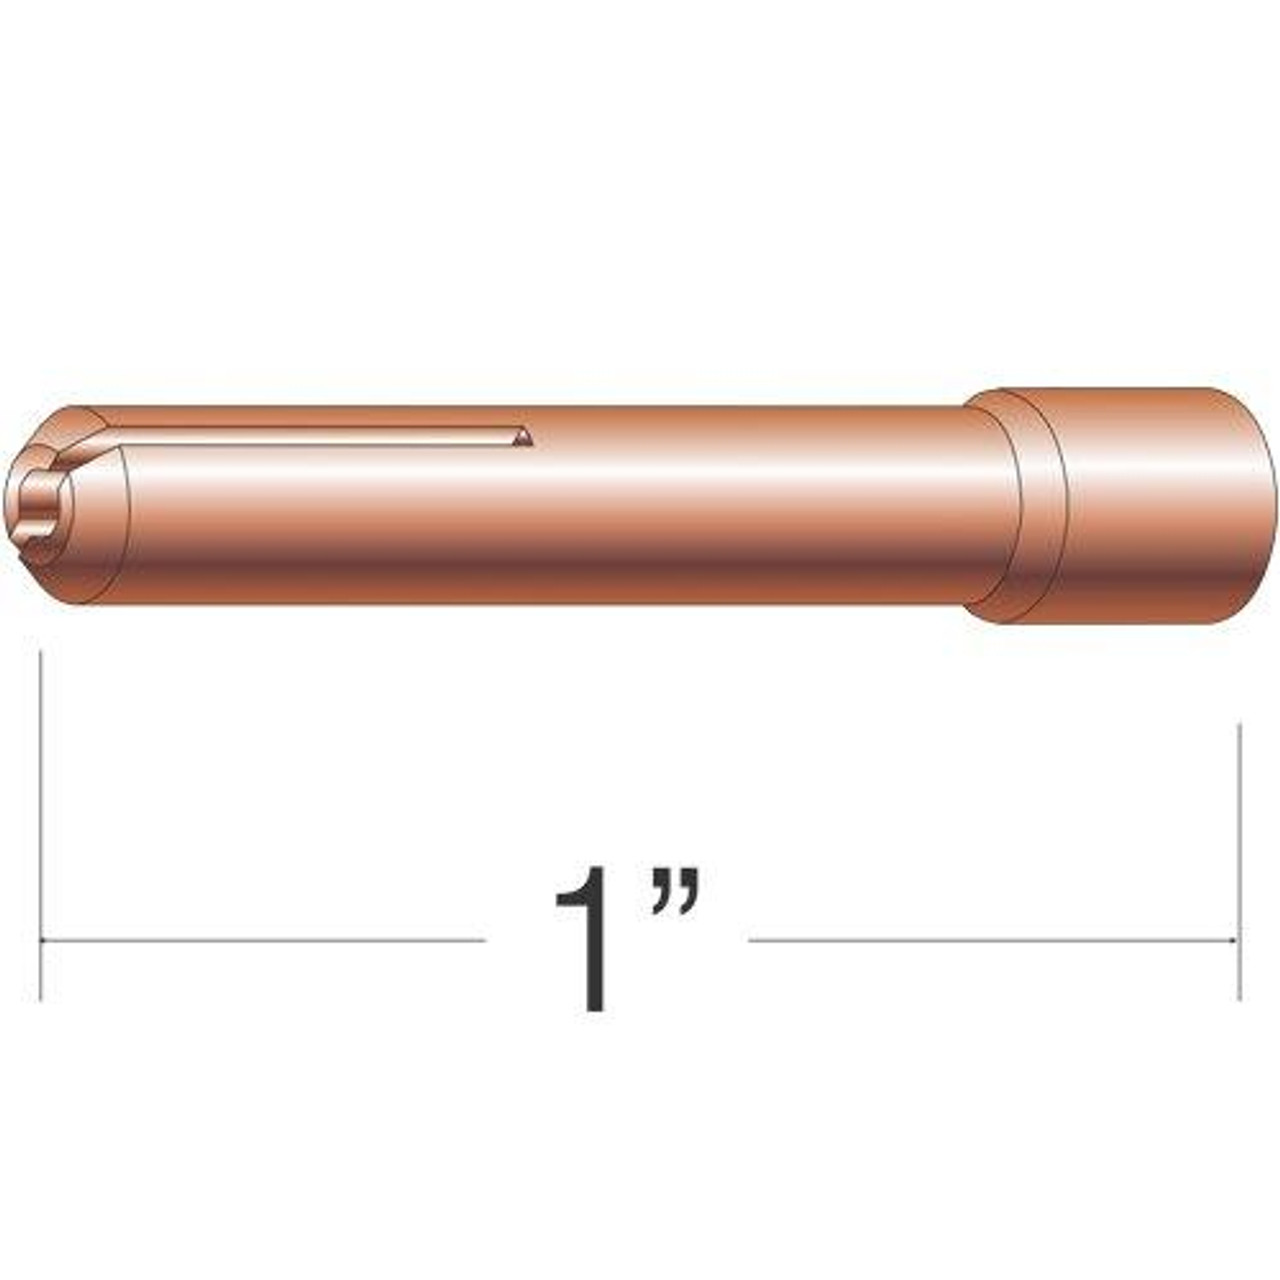 Profax 13N24 Collet 1/8 for 9-20-25 Series TIG Torches - 10 Pack